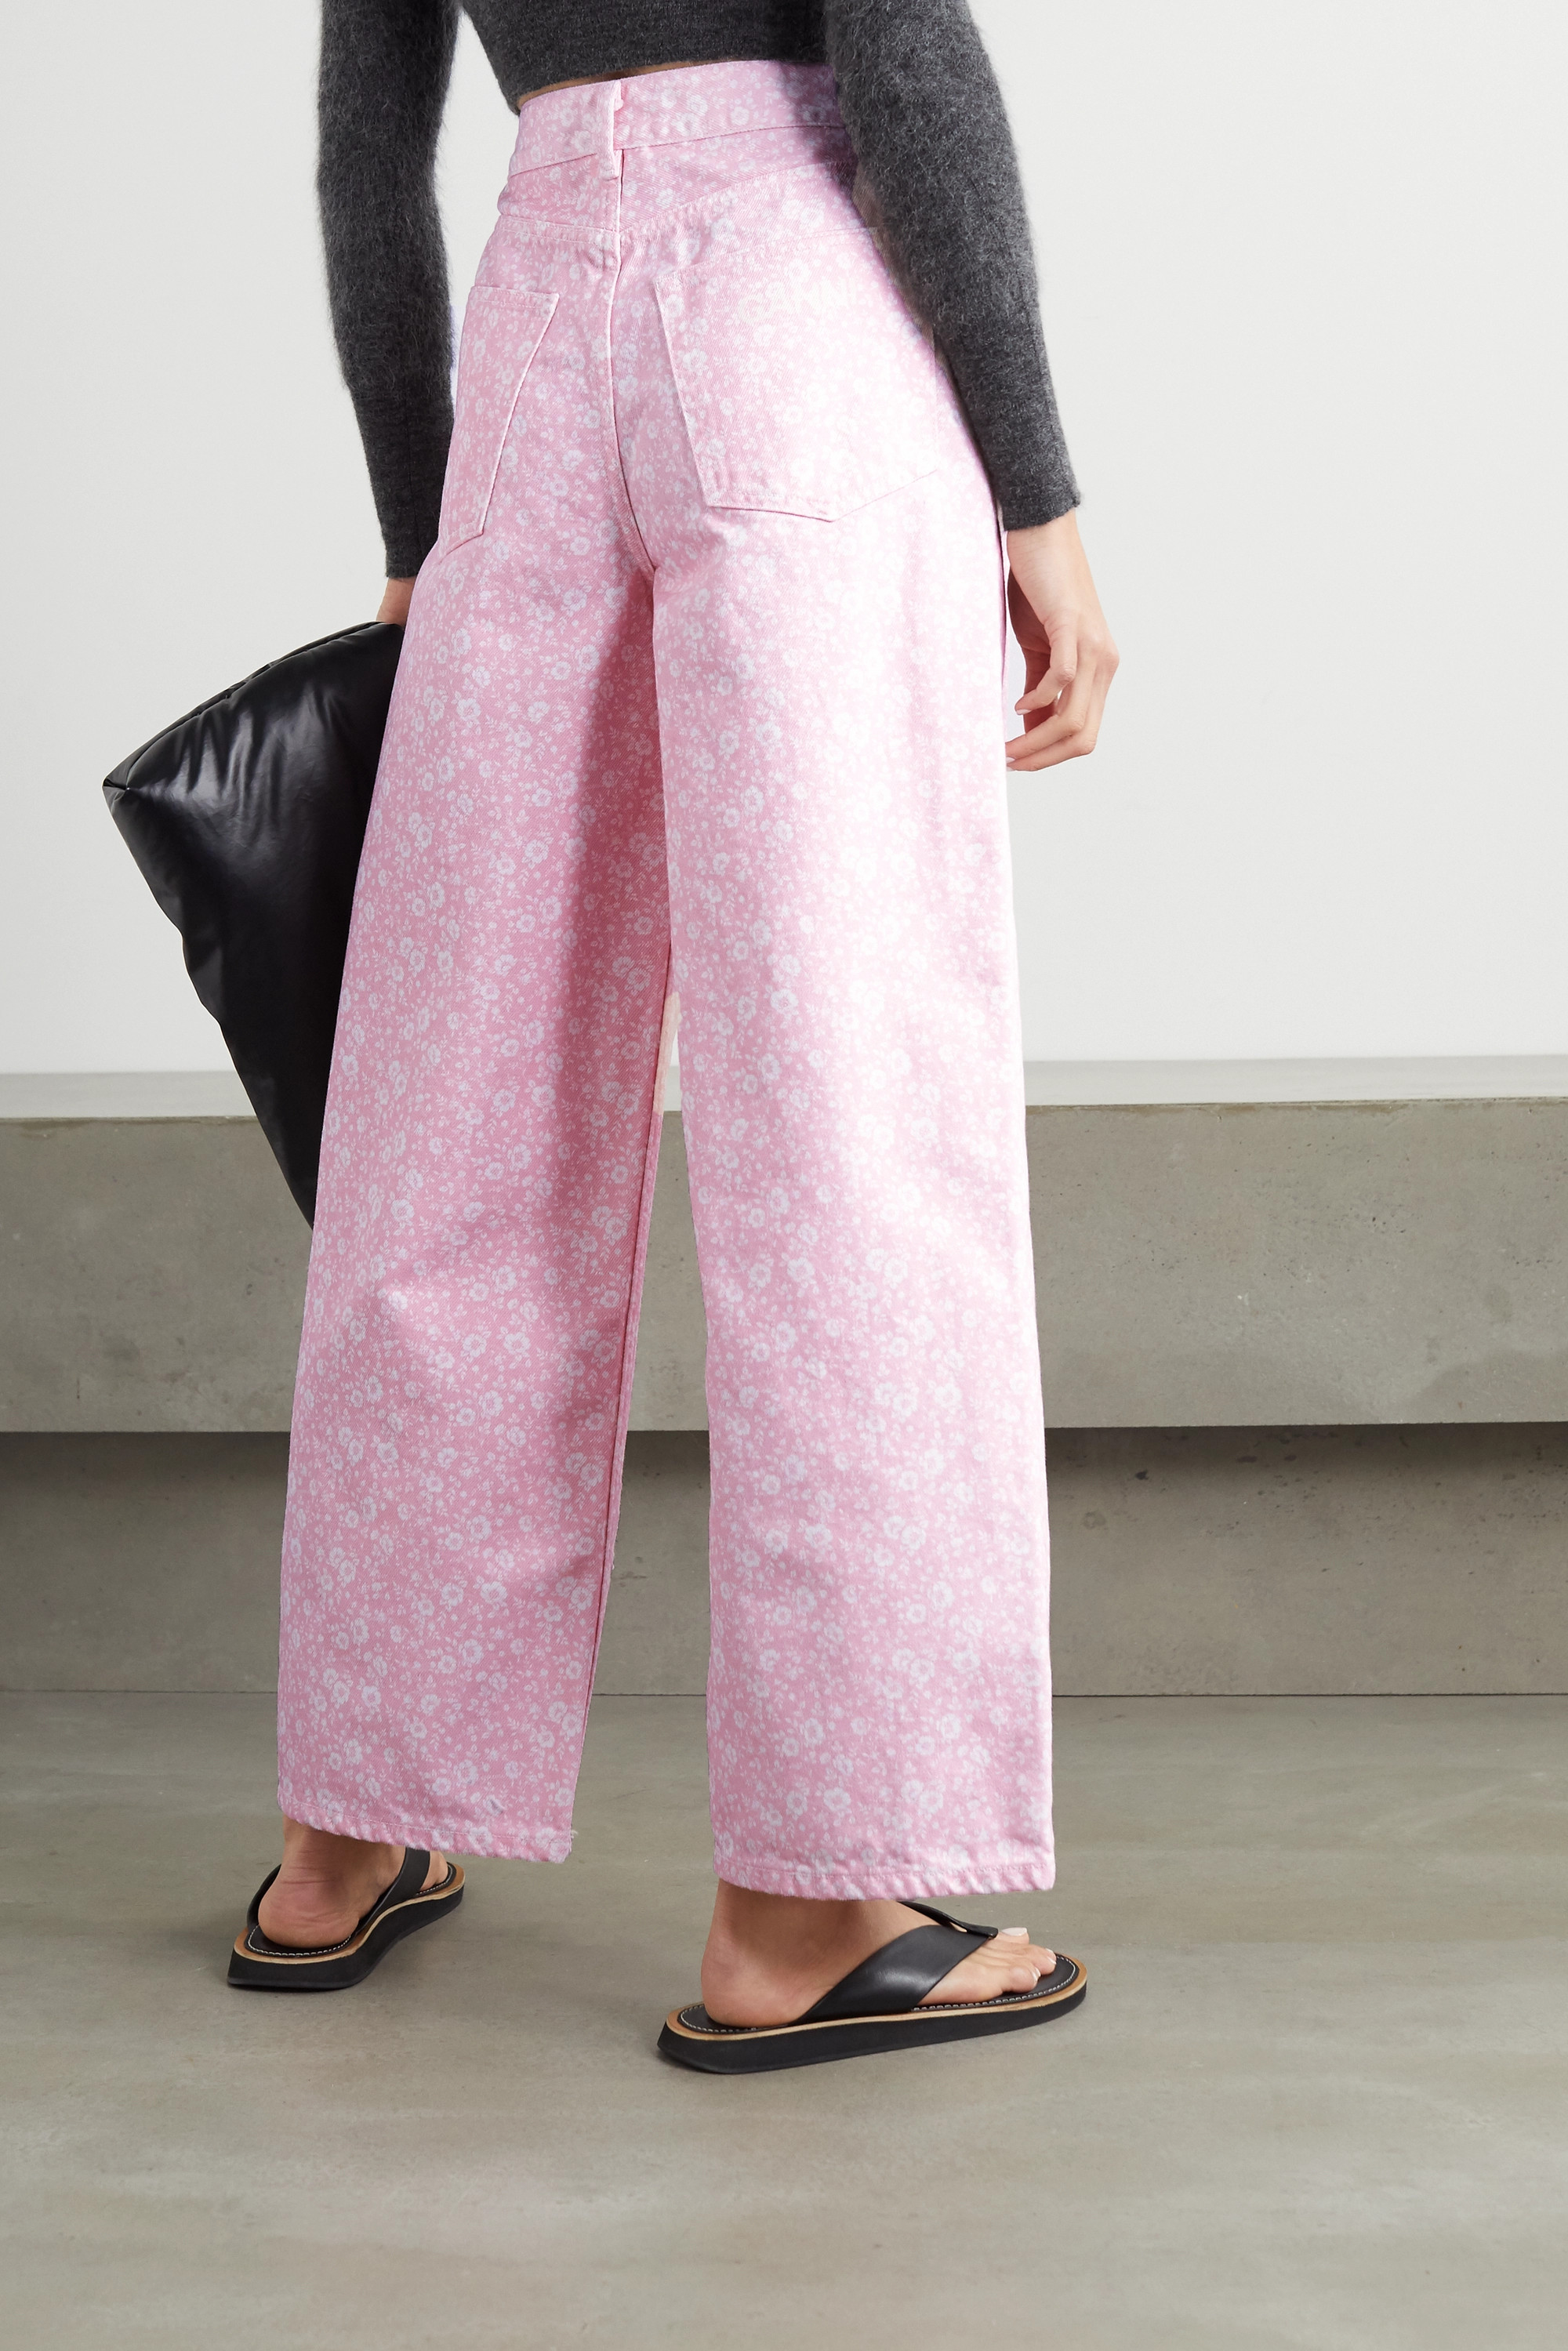 GANNI + NET SUSTAIN floral-print high-rise wide-leg jeans